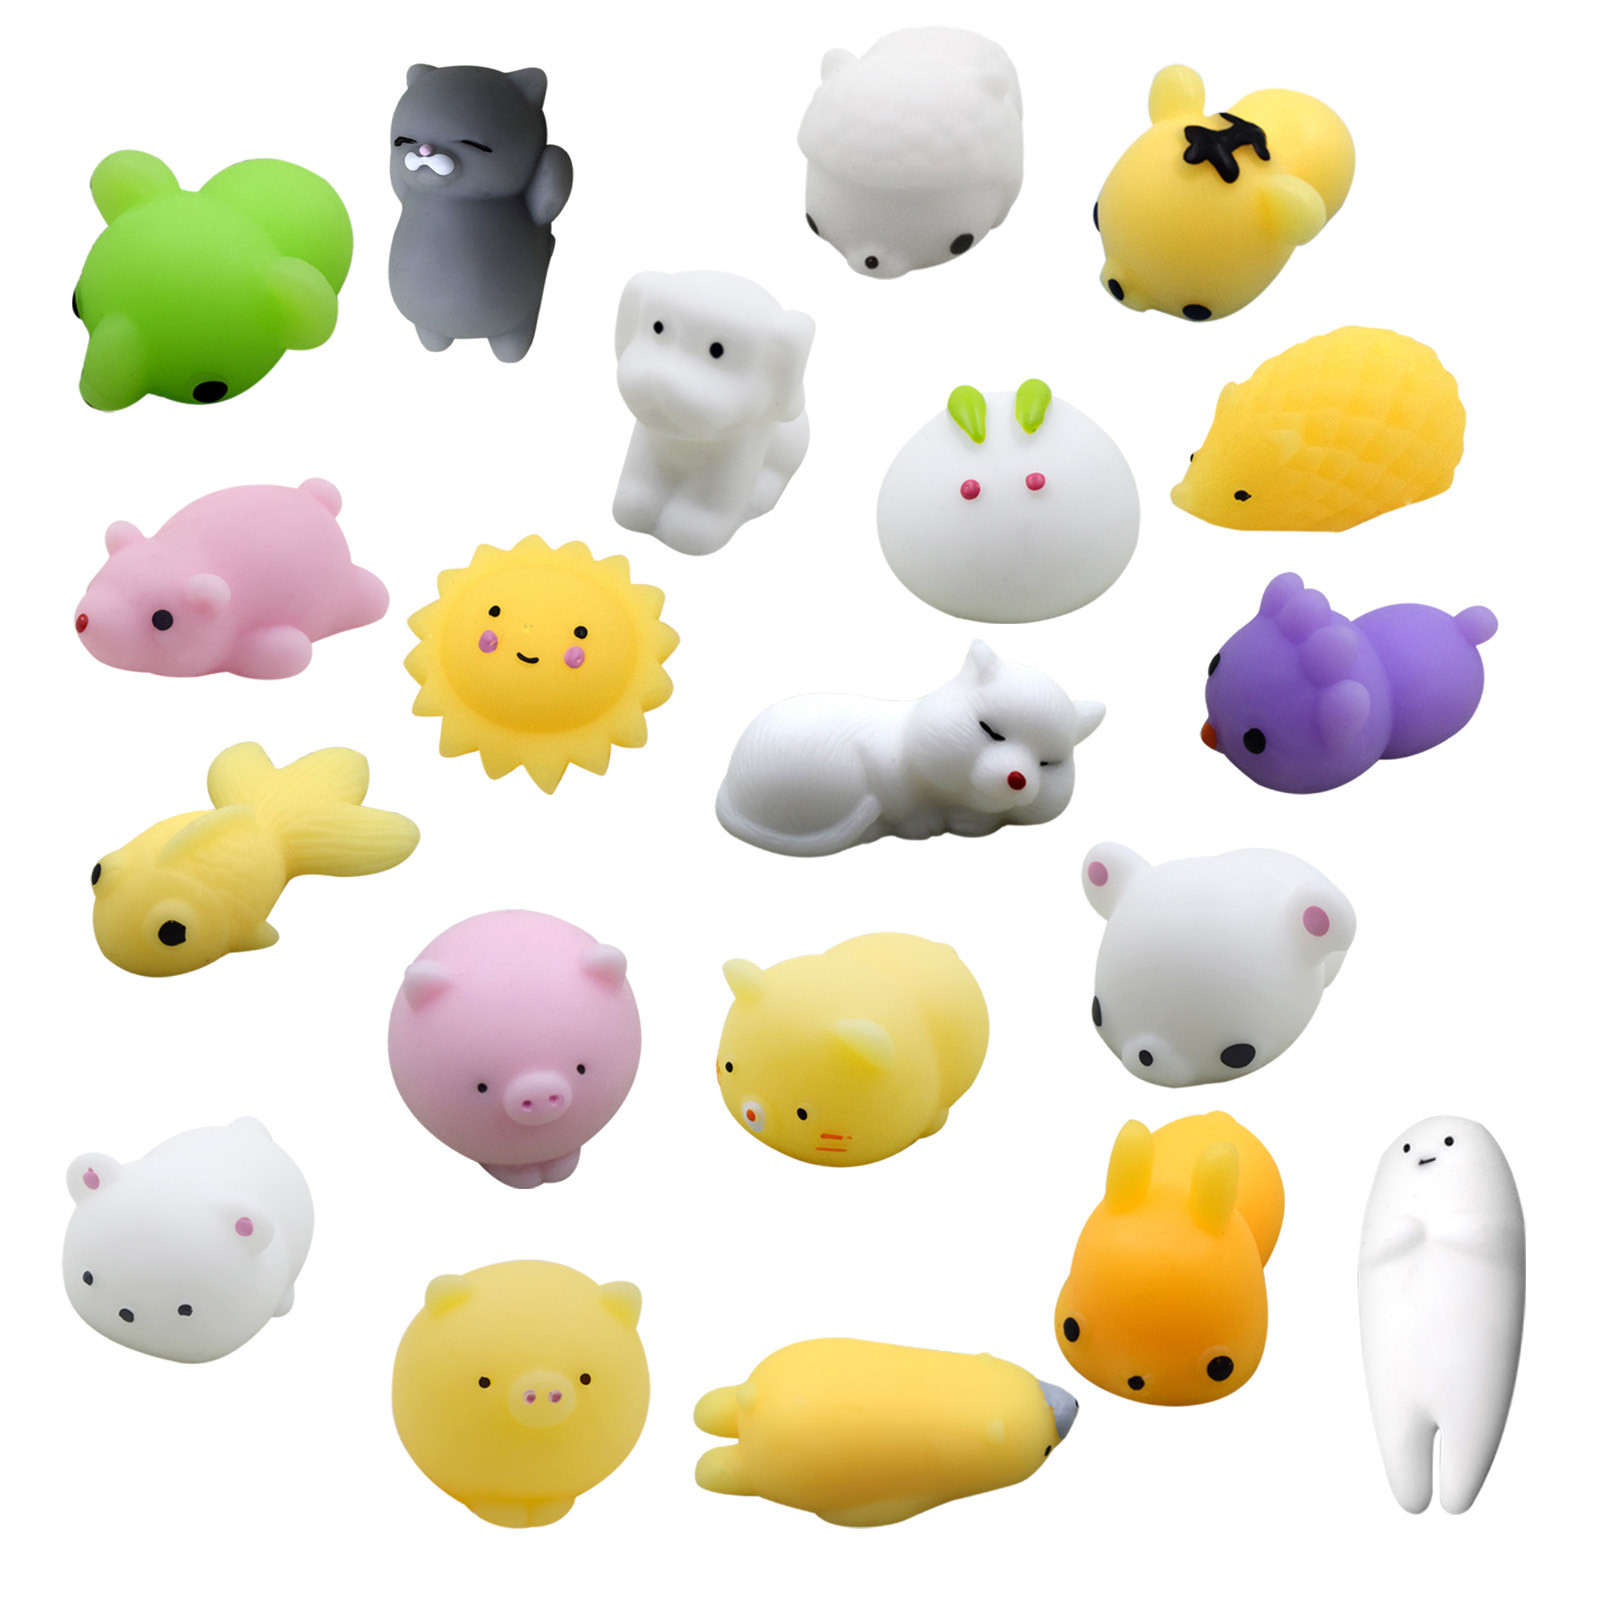 Kawaii Mochi Squishy Squeeze Pack Set Mini Cute Animal Toys Stress Relief Fidget Toys for Kids Adults Decompression Toy 2021